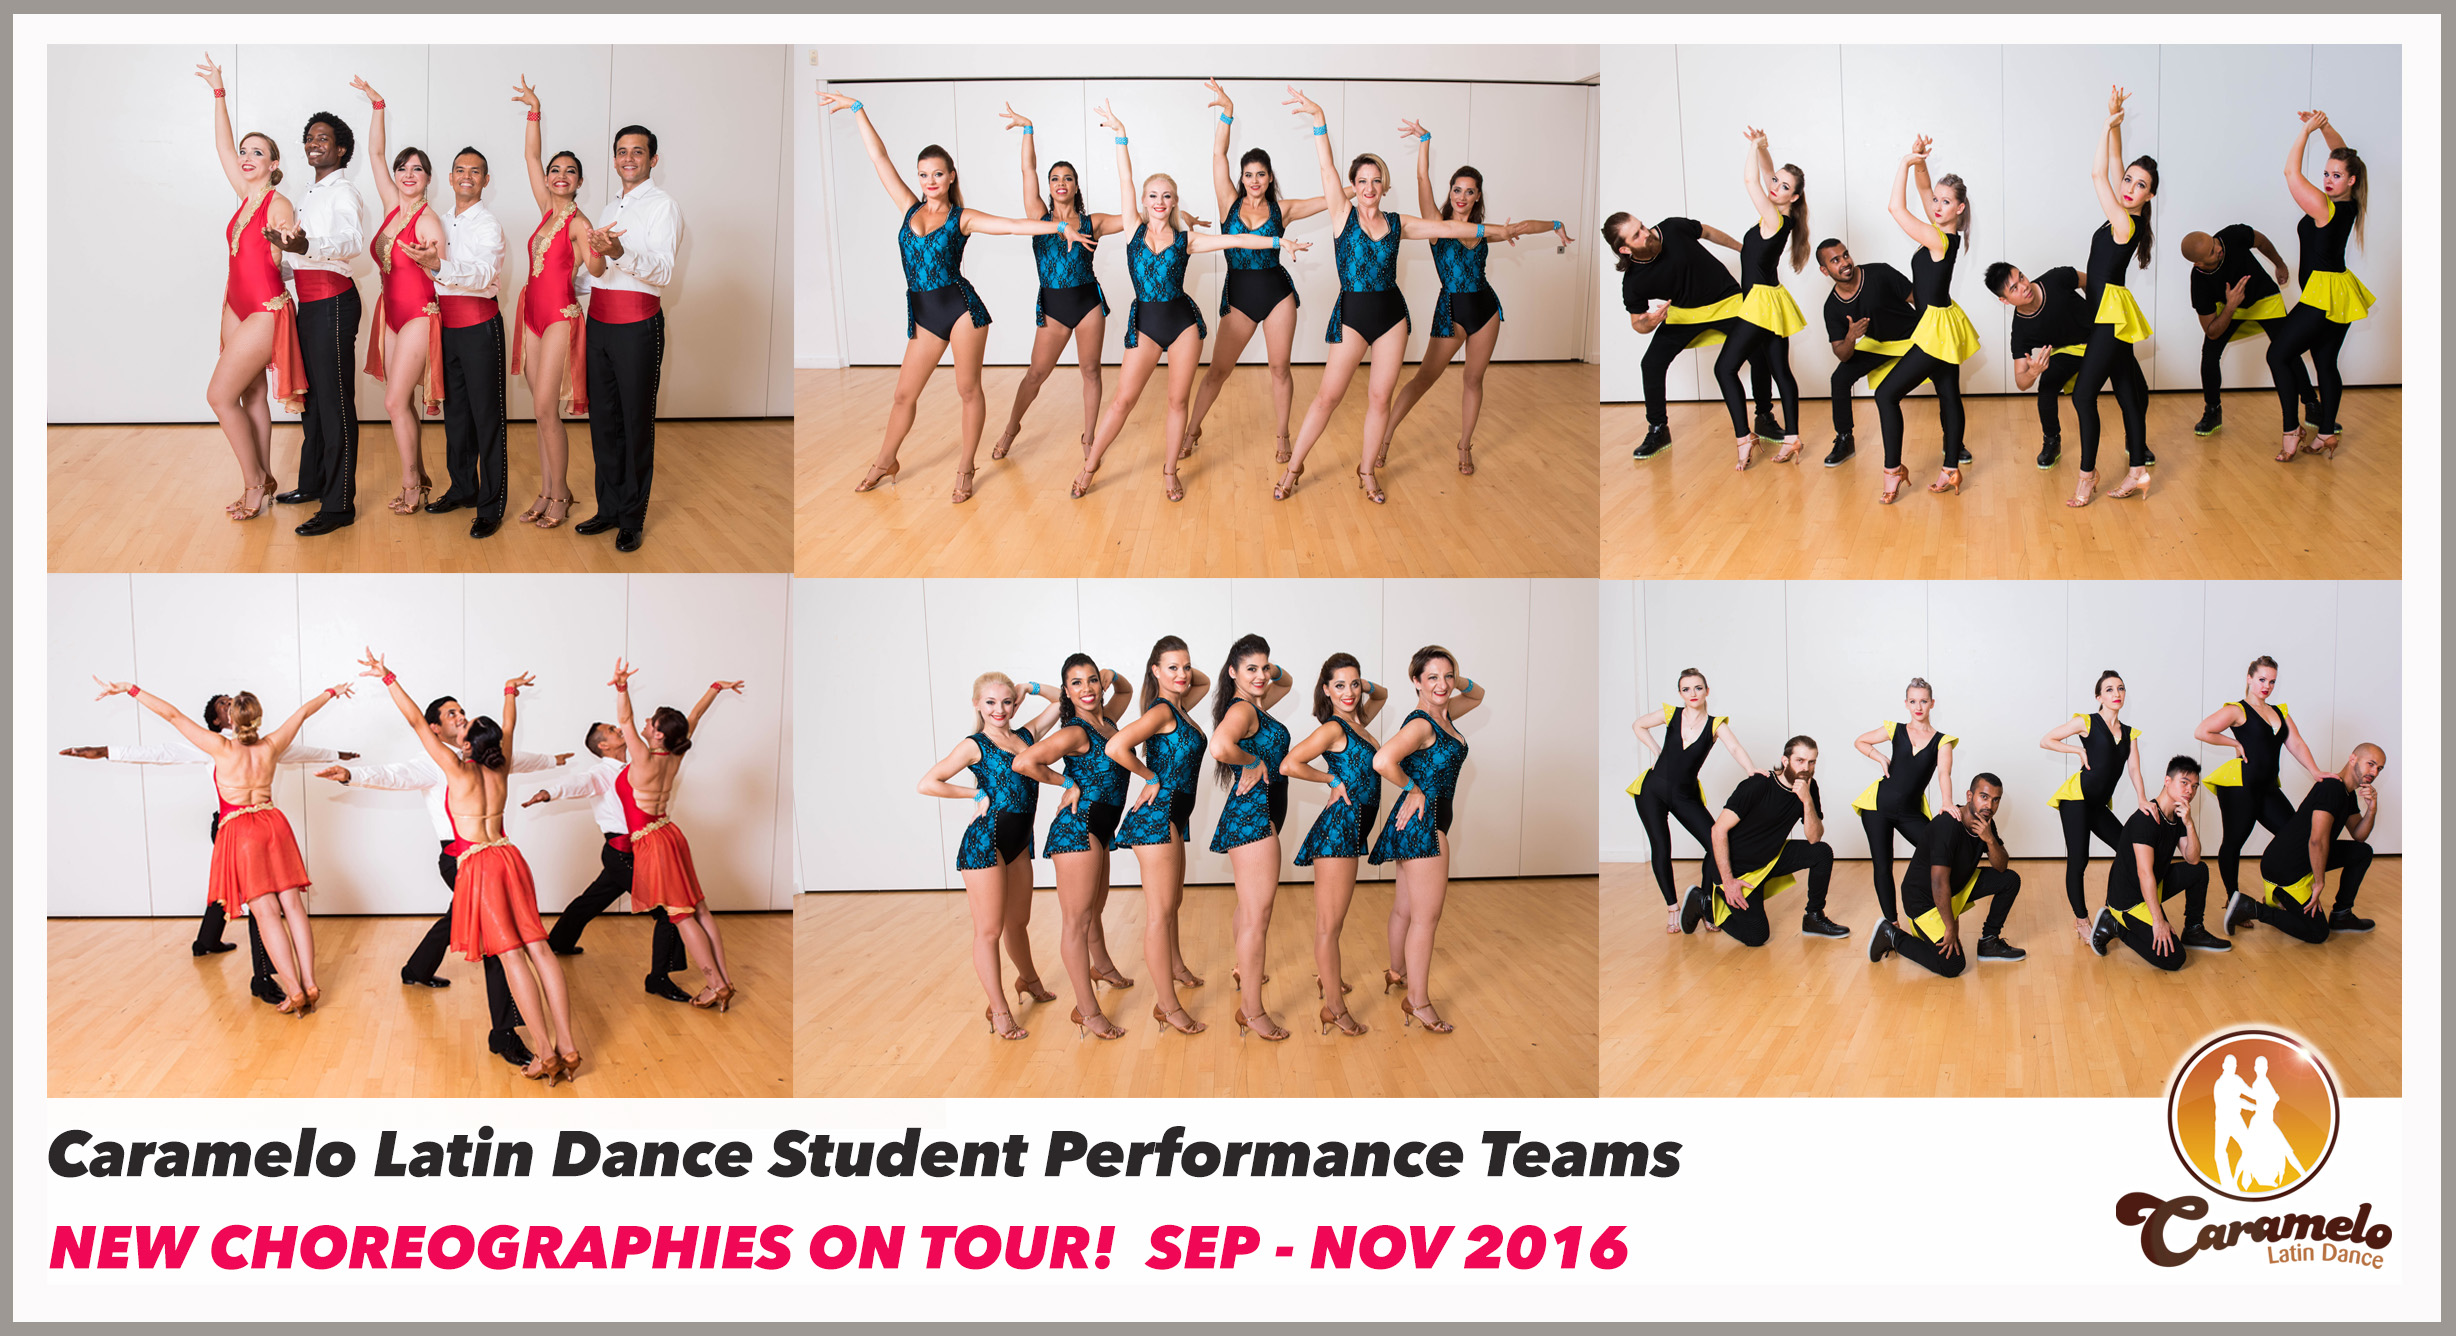 Caramelo Latin Dance Student Performance Teams - New Shows